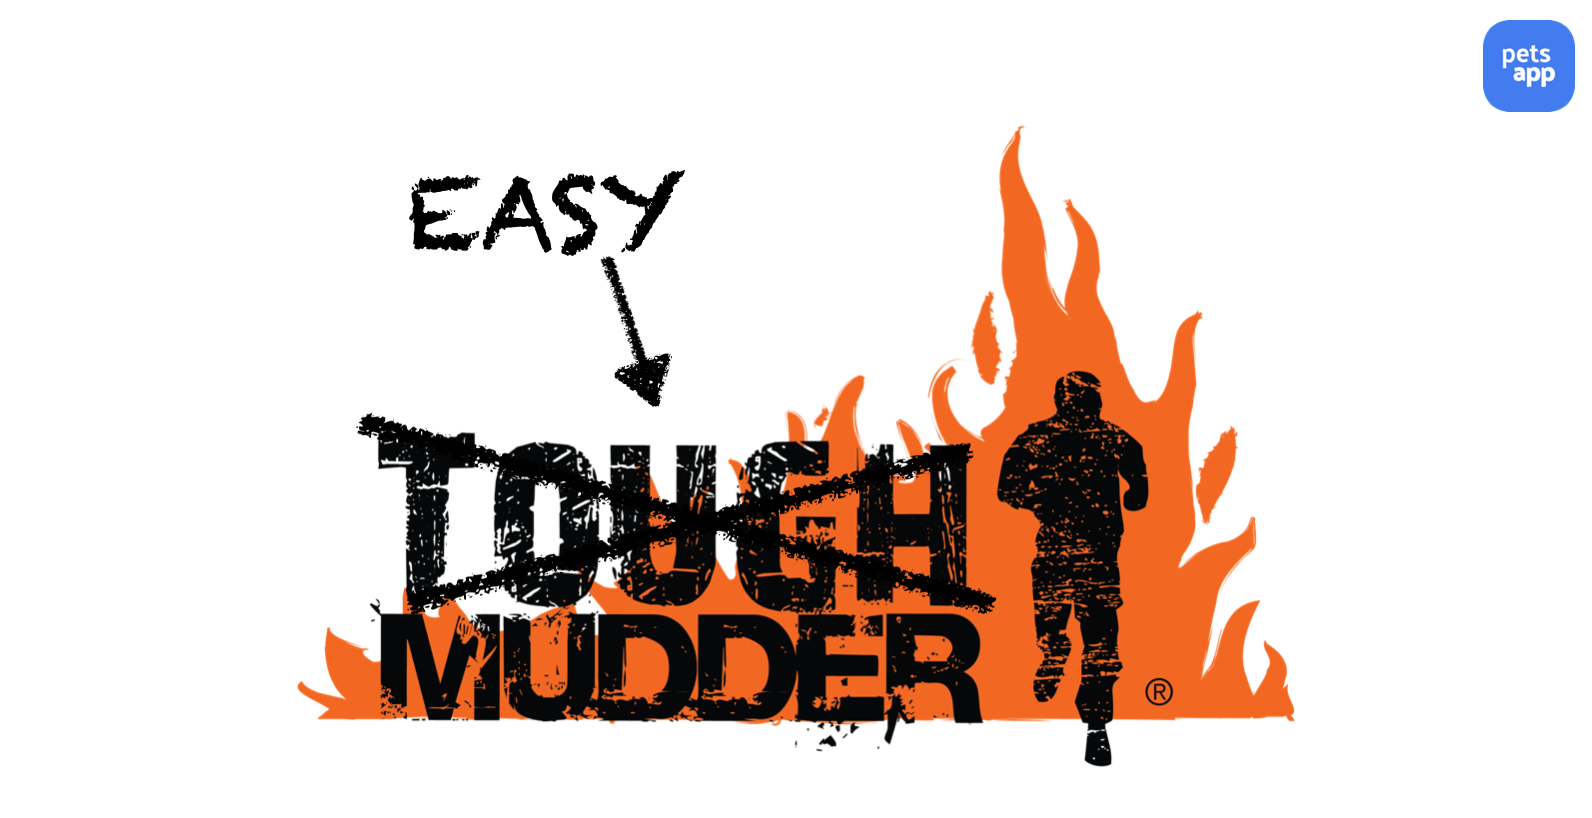 A Practitioner's Guide - Easy mudder